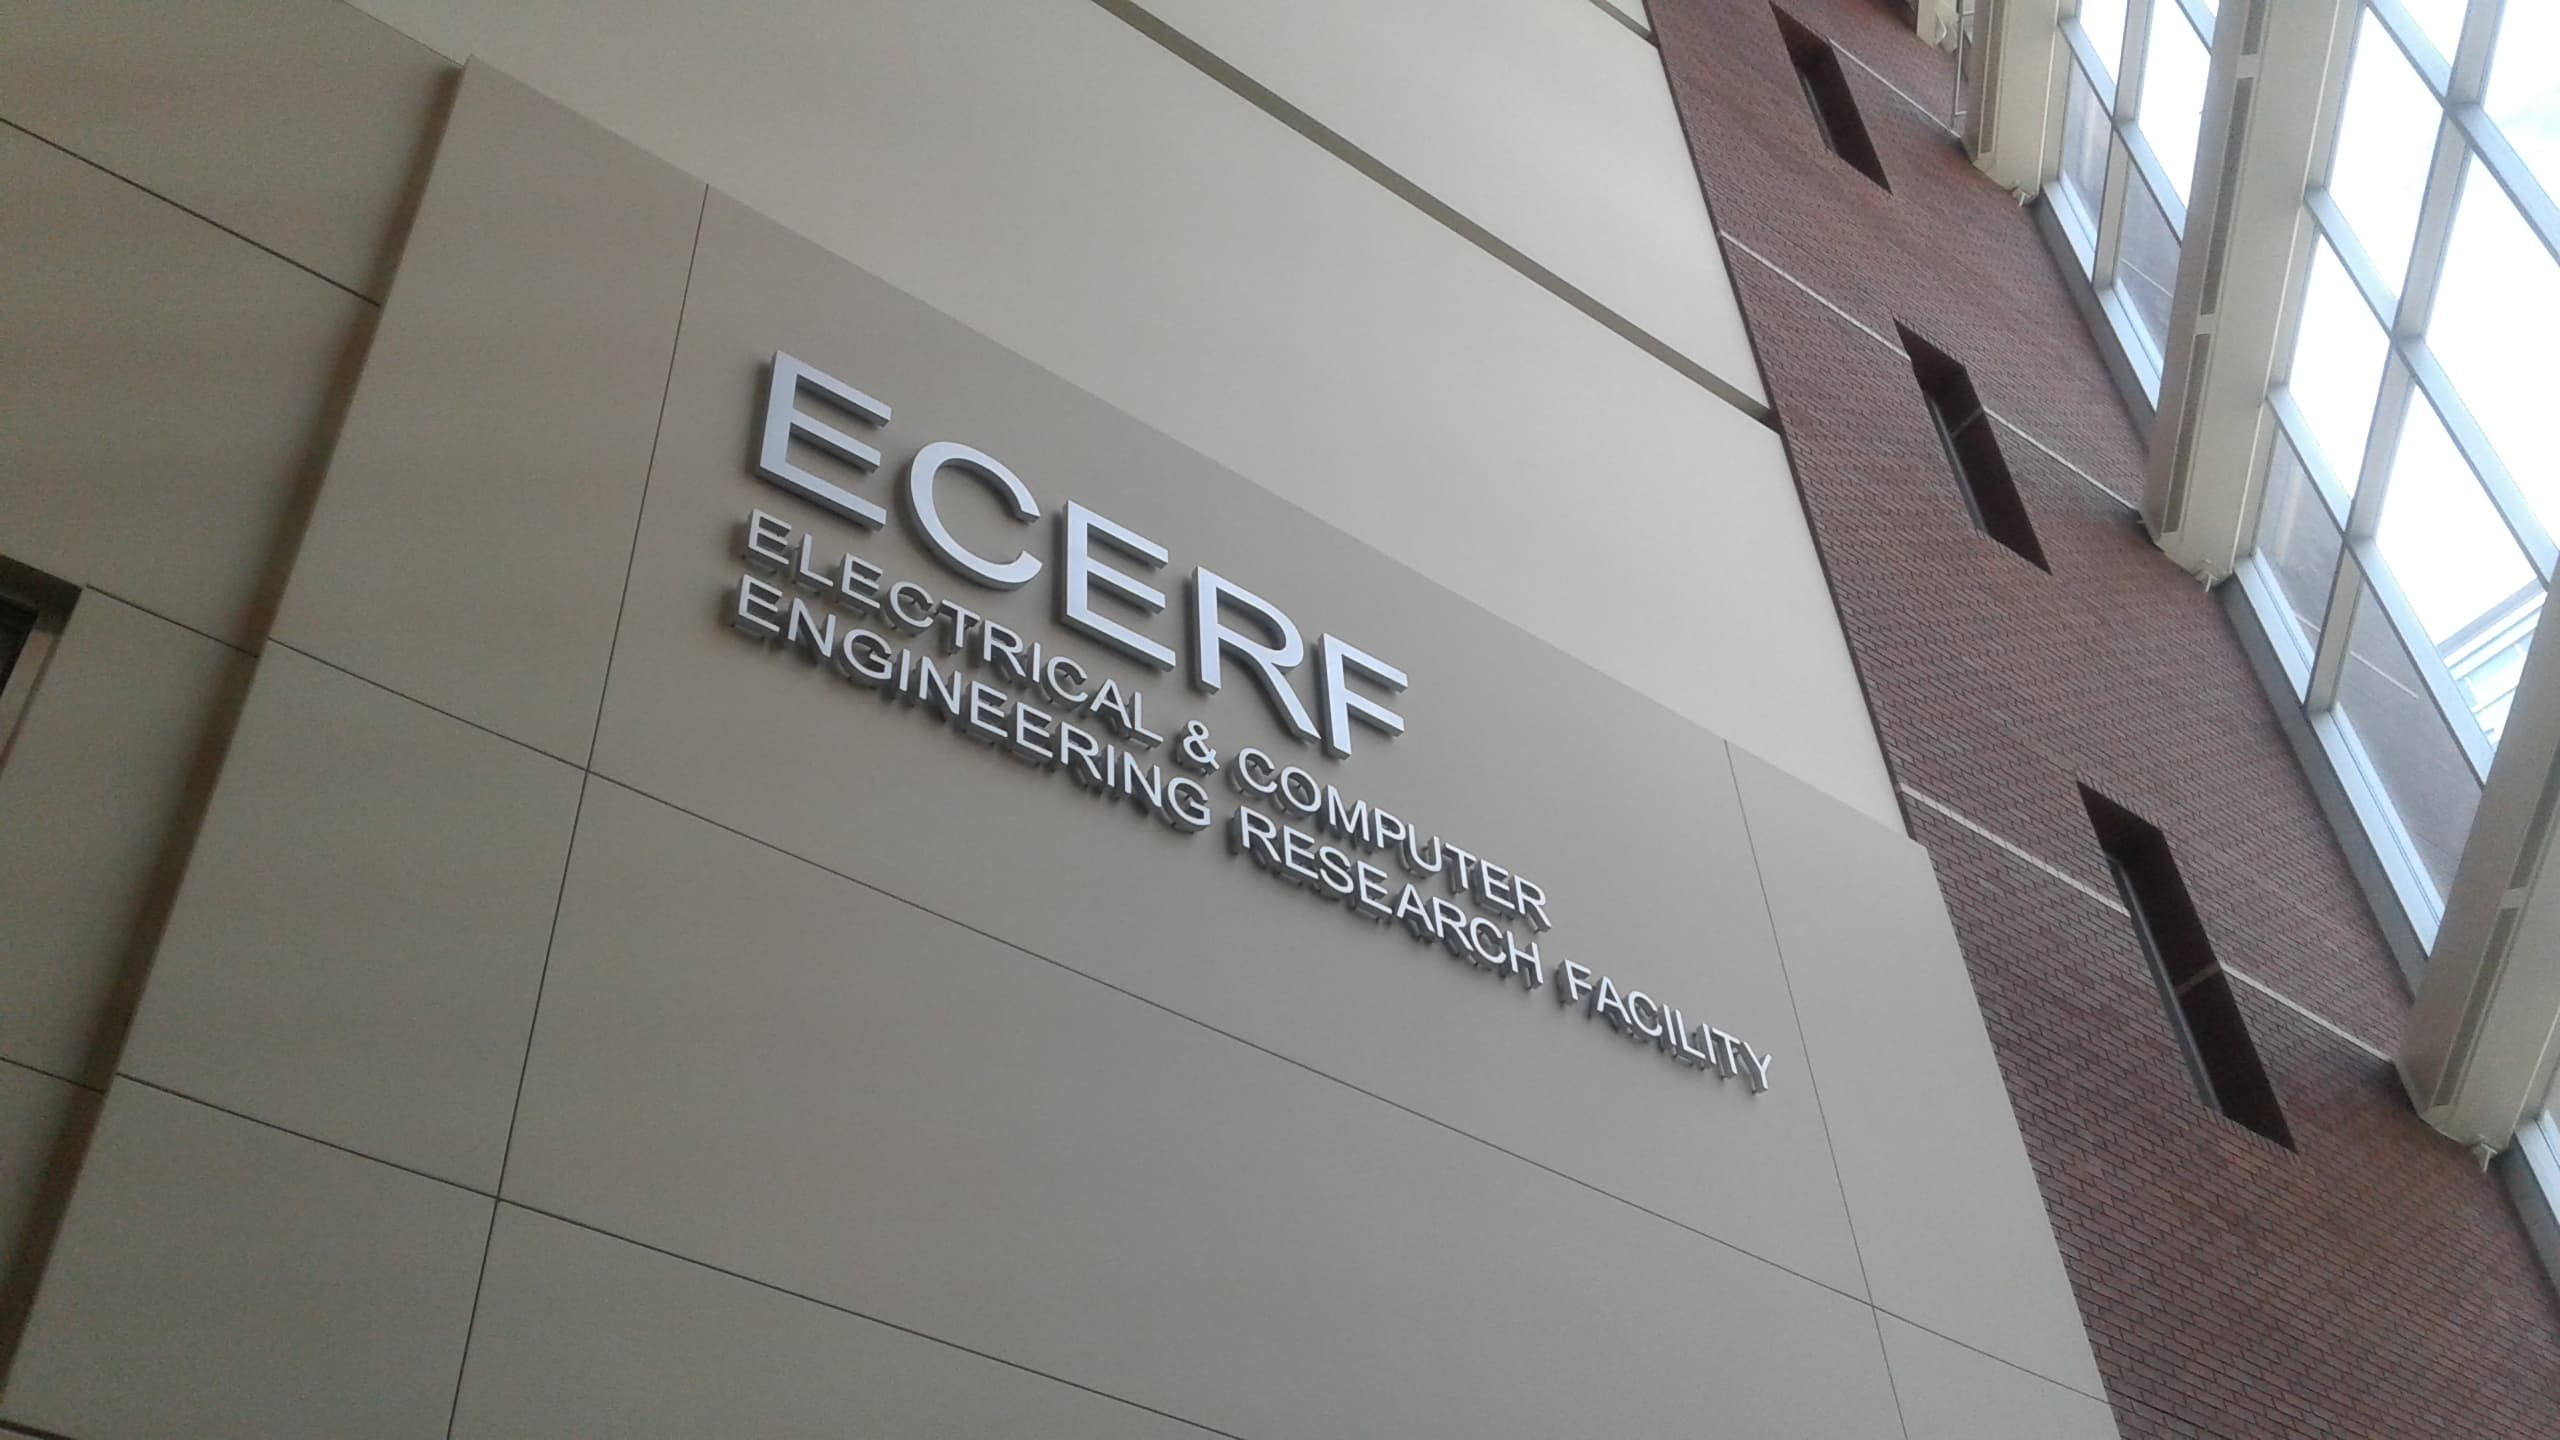 sign on building electrical & computer engineering research facility